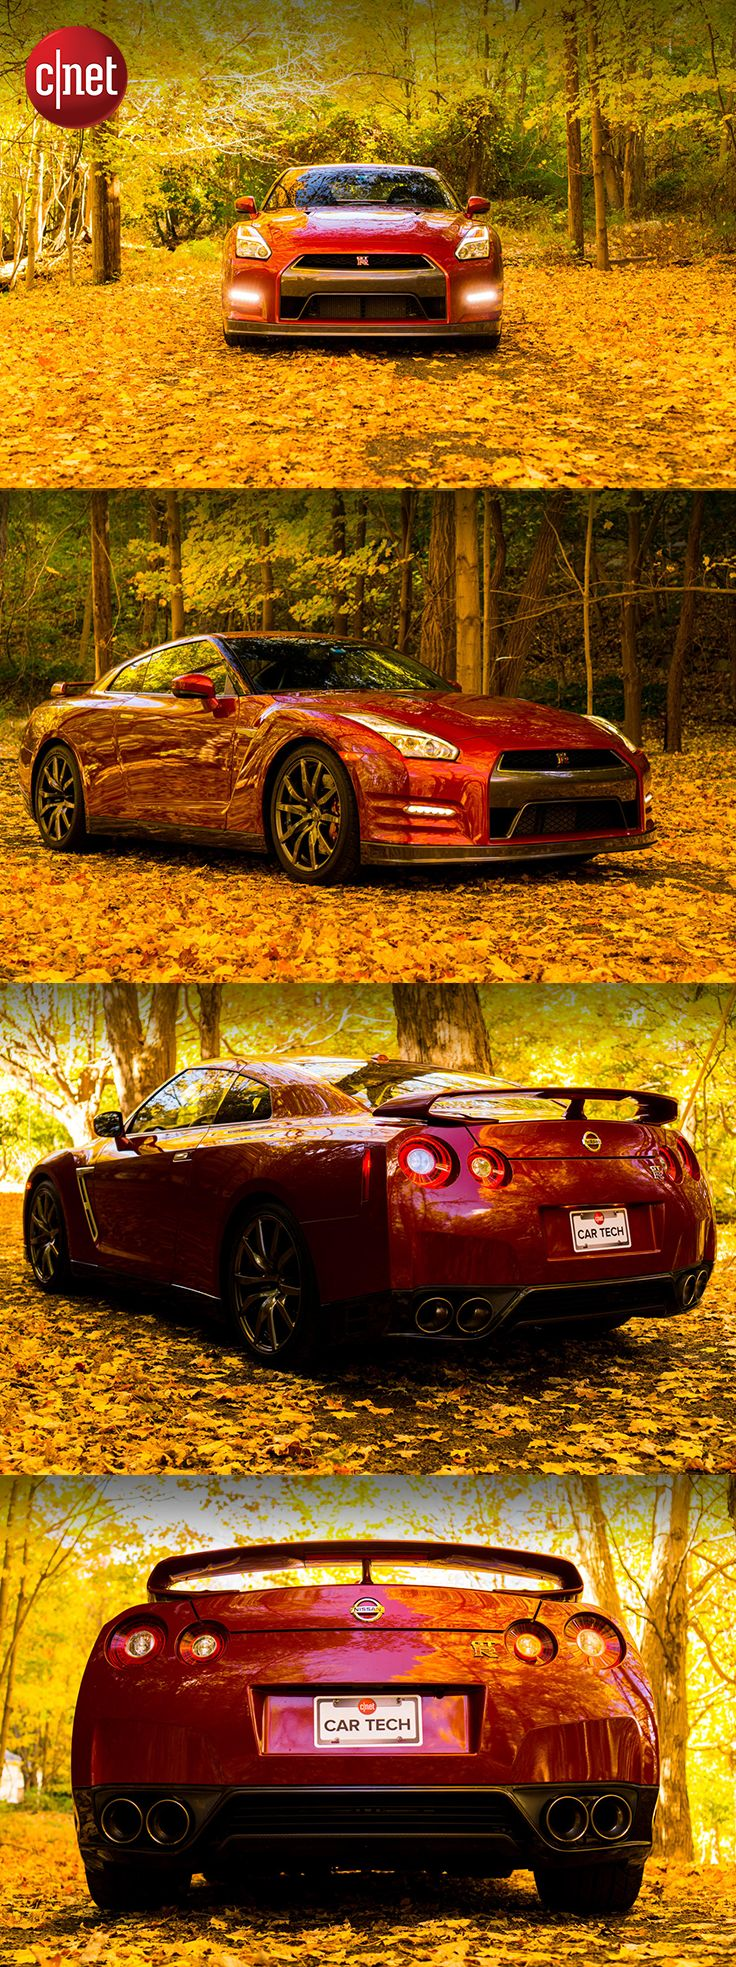 The 545-horsepower Nissan GT-R is a monster in sheep's clothing. It has astonishing acceleration and amazing performance in whatever conditions it finds itself in. See the full review of this beast of a supercar on CNET.